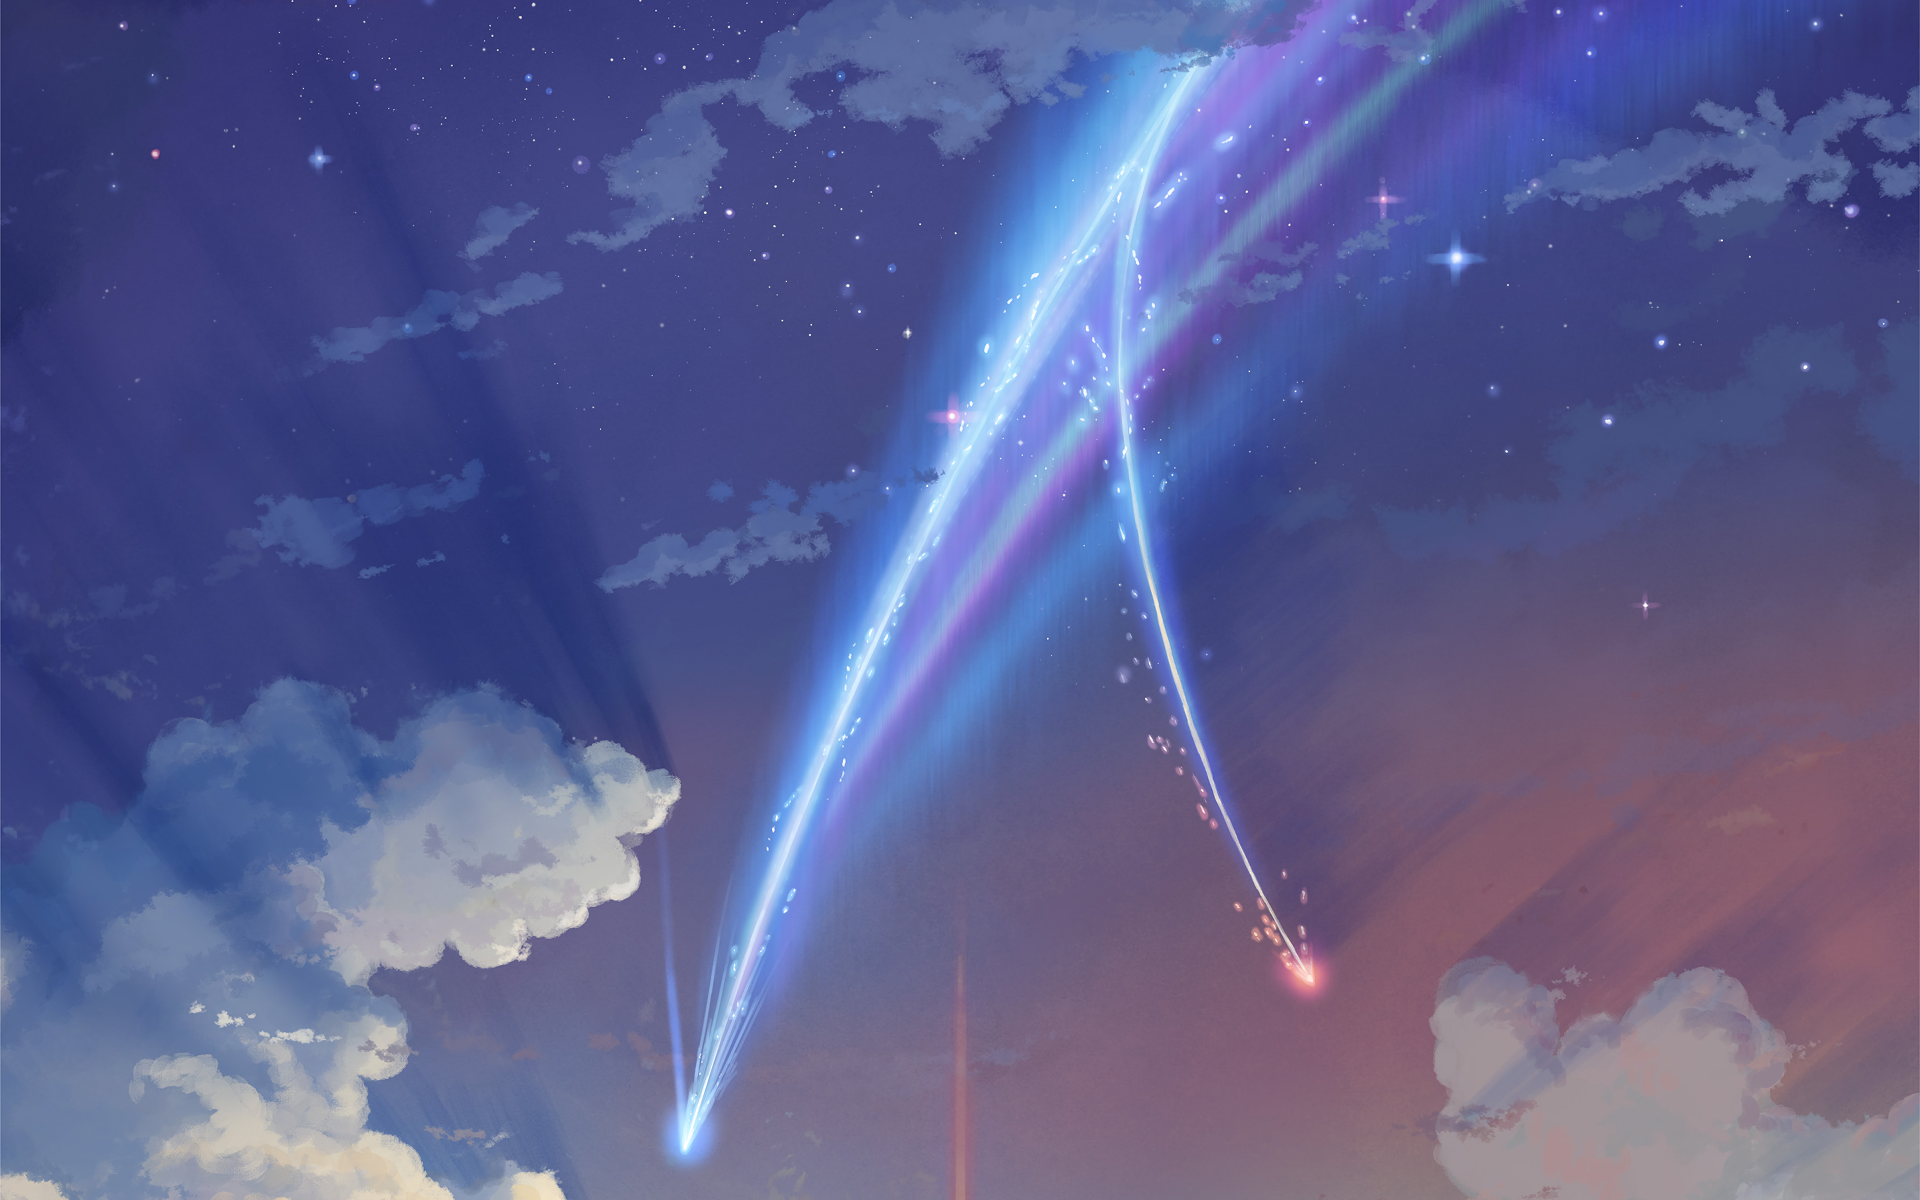 1250 Kimi No Na Wa Hd Wallpapers And Background Images Download For Free On All Your Devices Compu Kimi No Na Wa Wallpaper Kimi No Na Wa Your Name Wallpaper